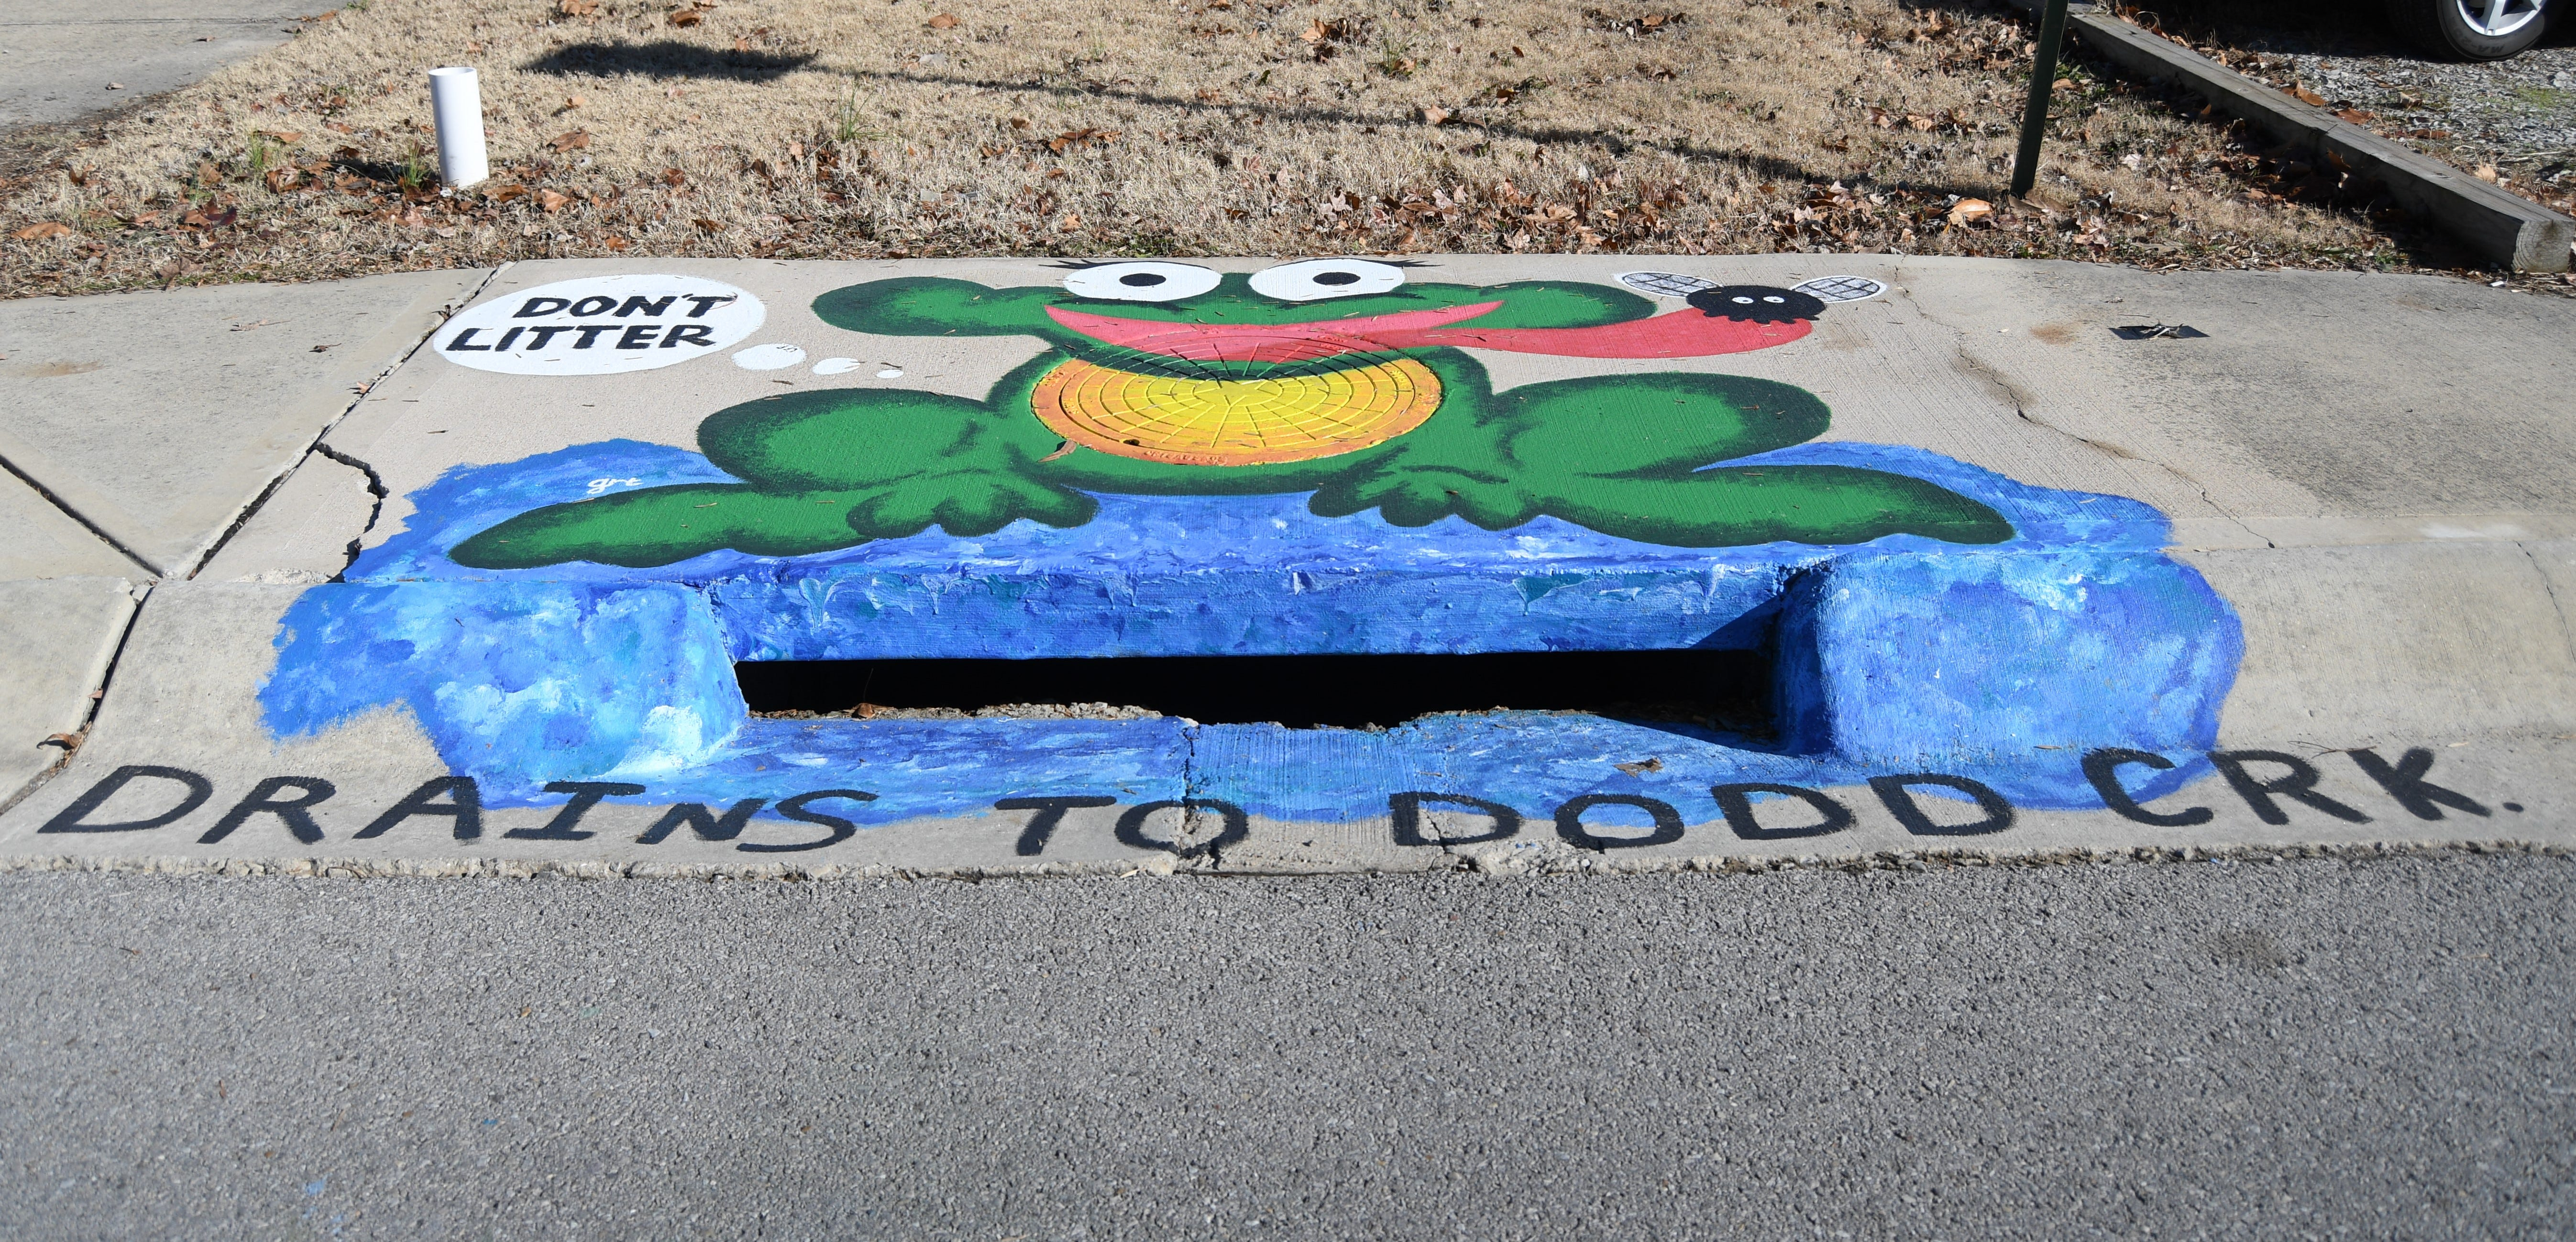 This storm drain can be found between That Print Shop and Precision Auto Repair on Bomber Boulevard. It was painted by Mountain Home High School students Gracie Todd and Lakeisha Ponce.